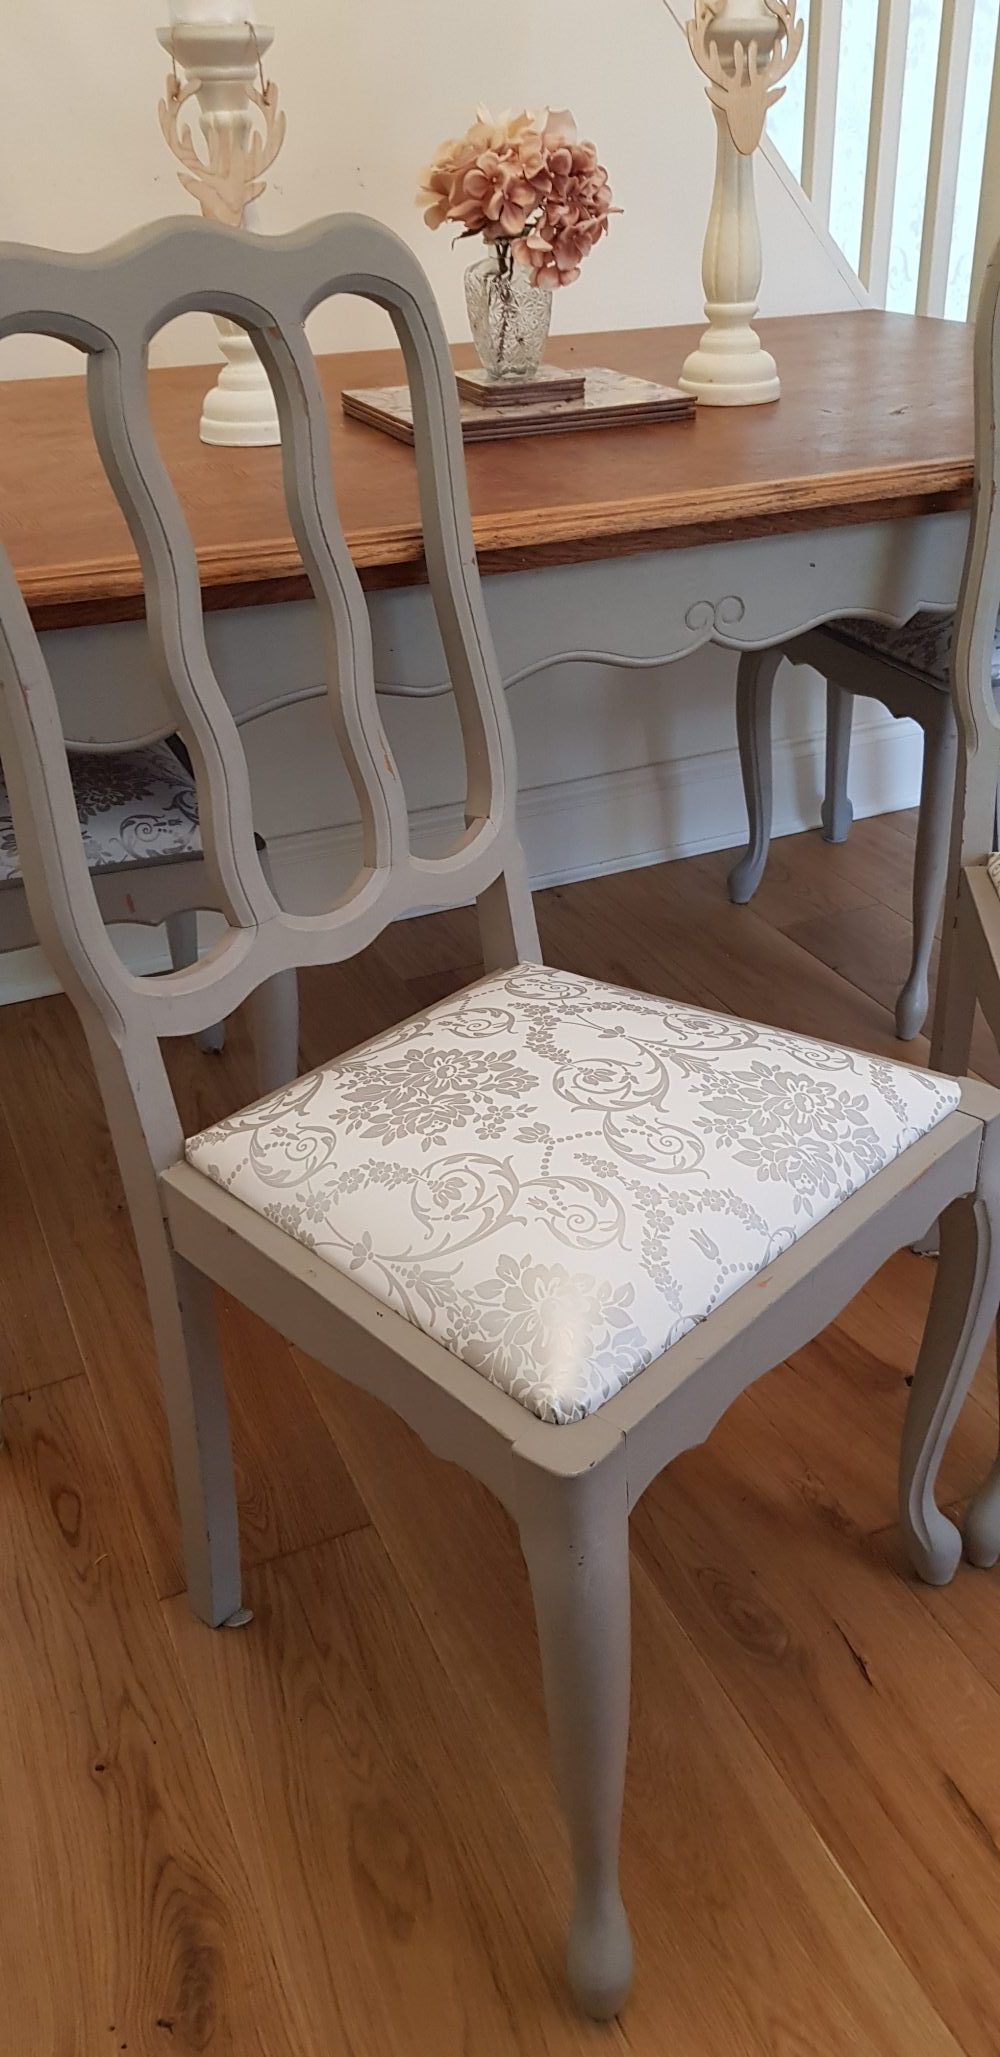 diy chair cushion reupholster